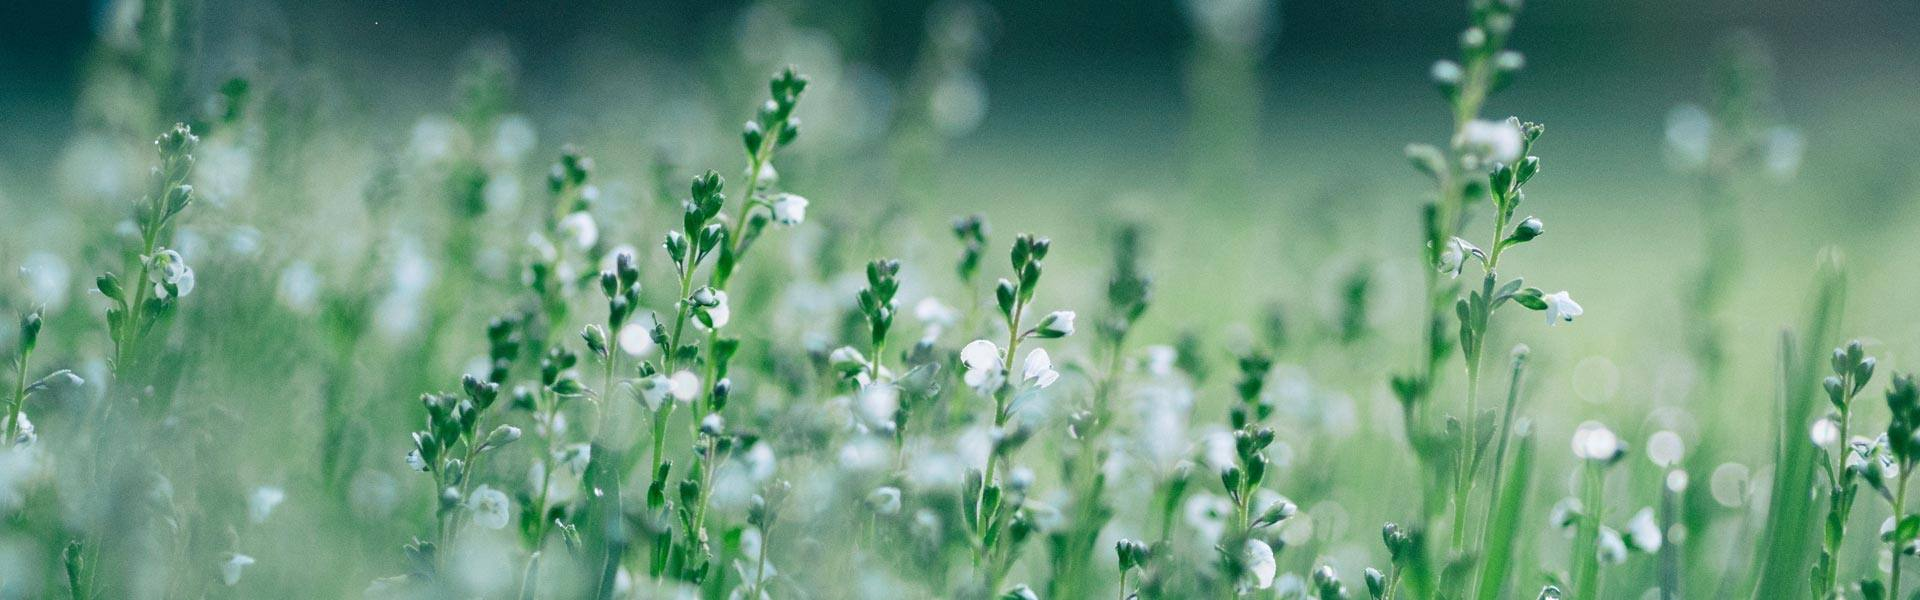 Tall plants with white florals in a green field